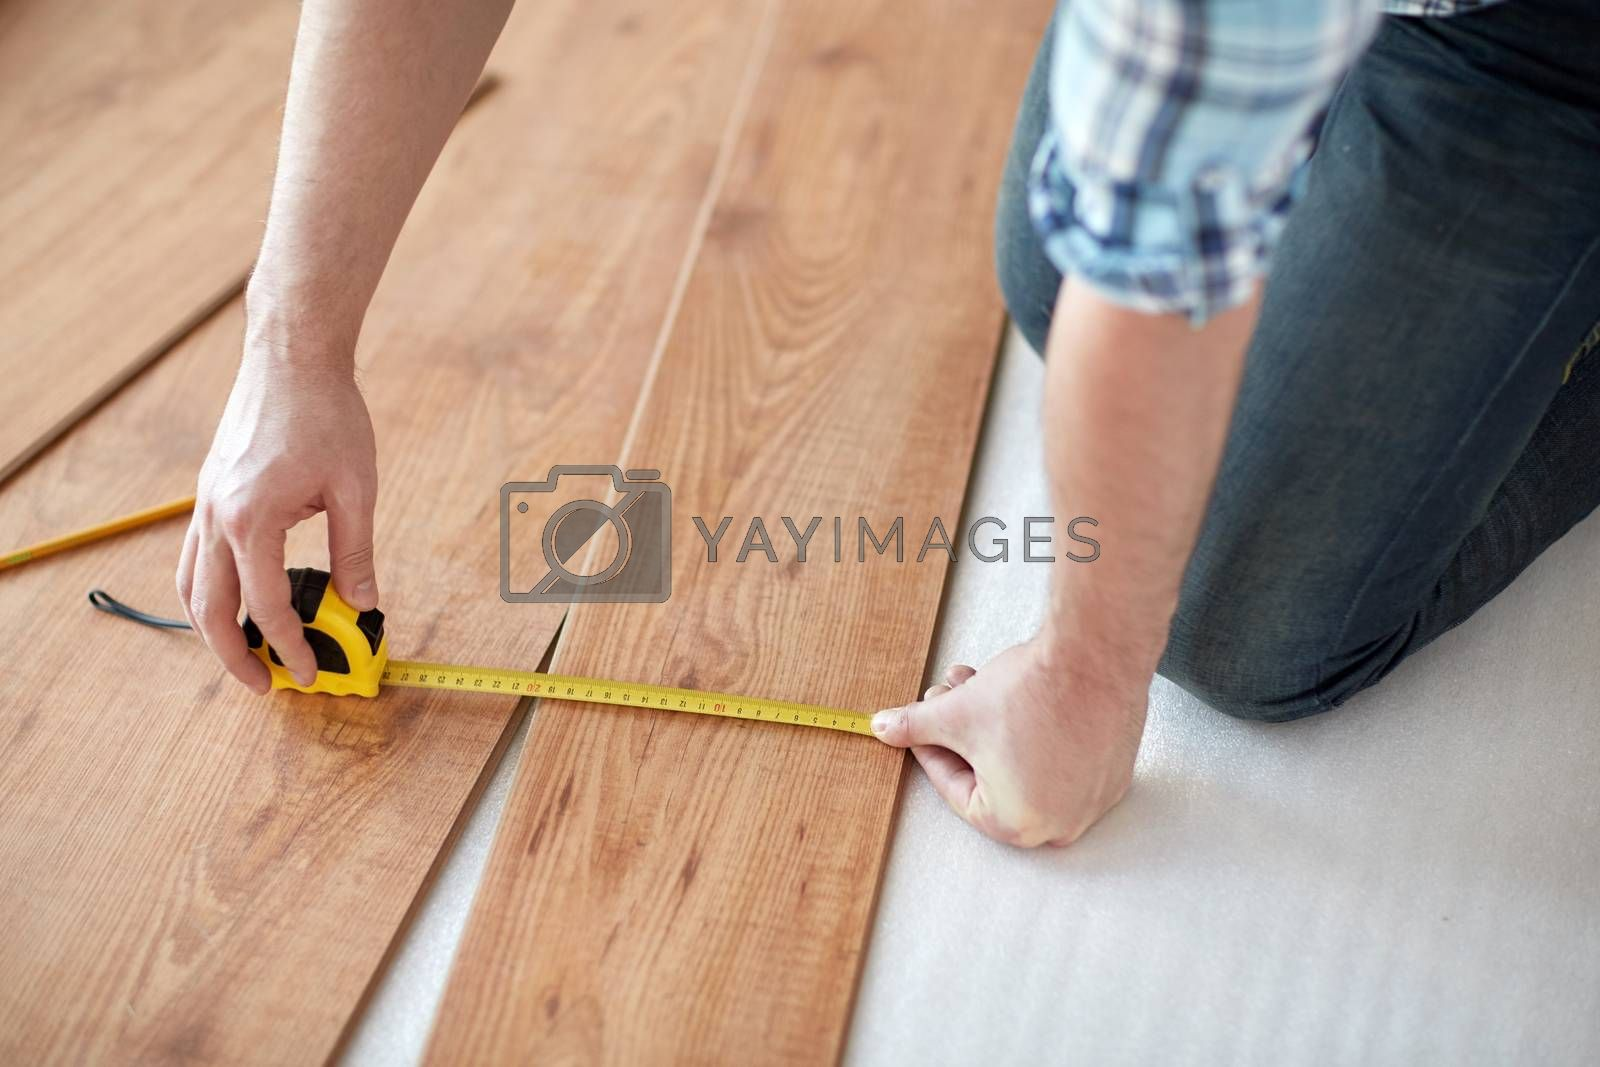 repair, building, floor and people concept - close up of male  hands measuring wooden flooring with ruler and making mark by pencil